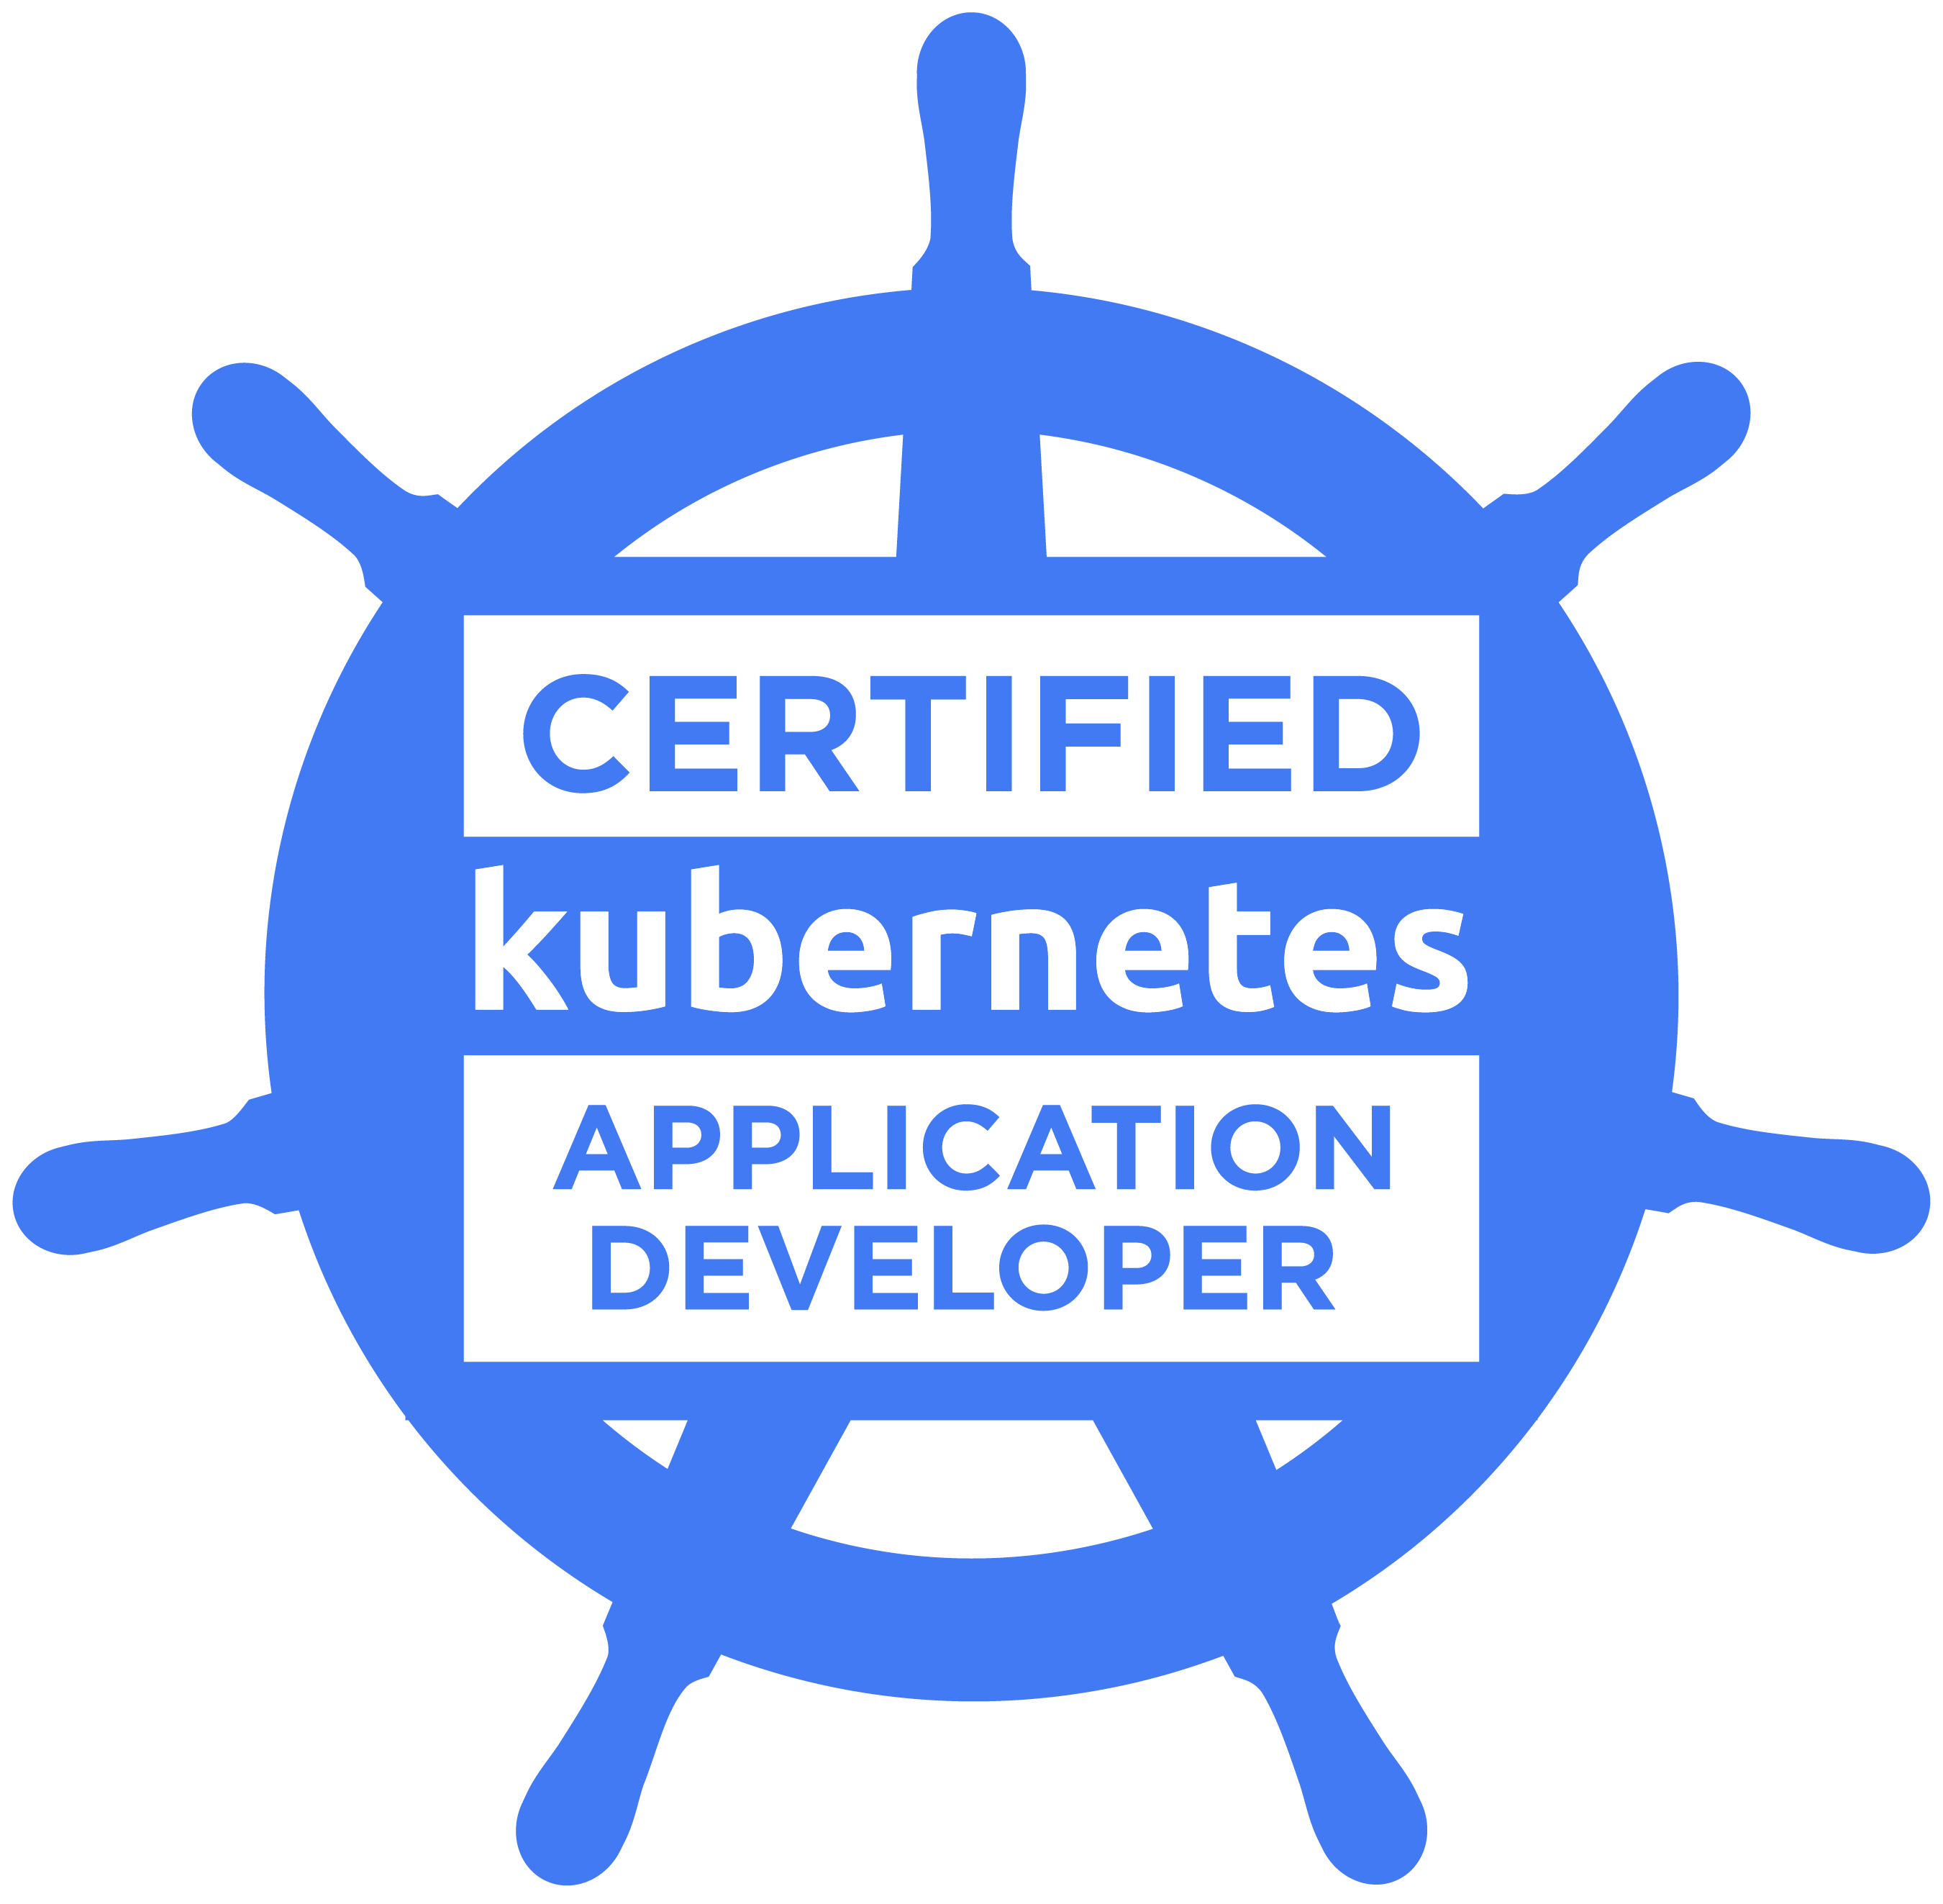 Mohammad Darab Certified Kubernetes Application Developer